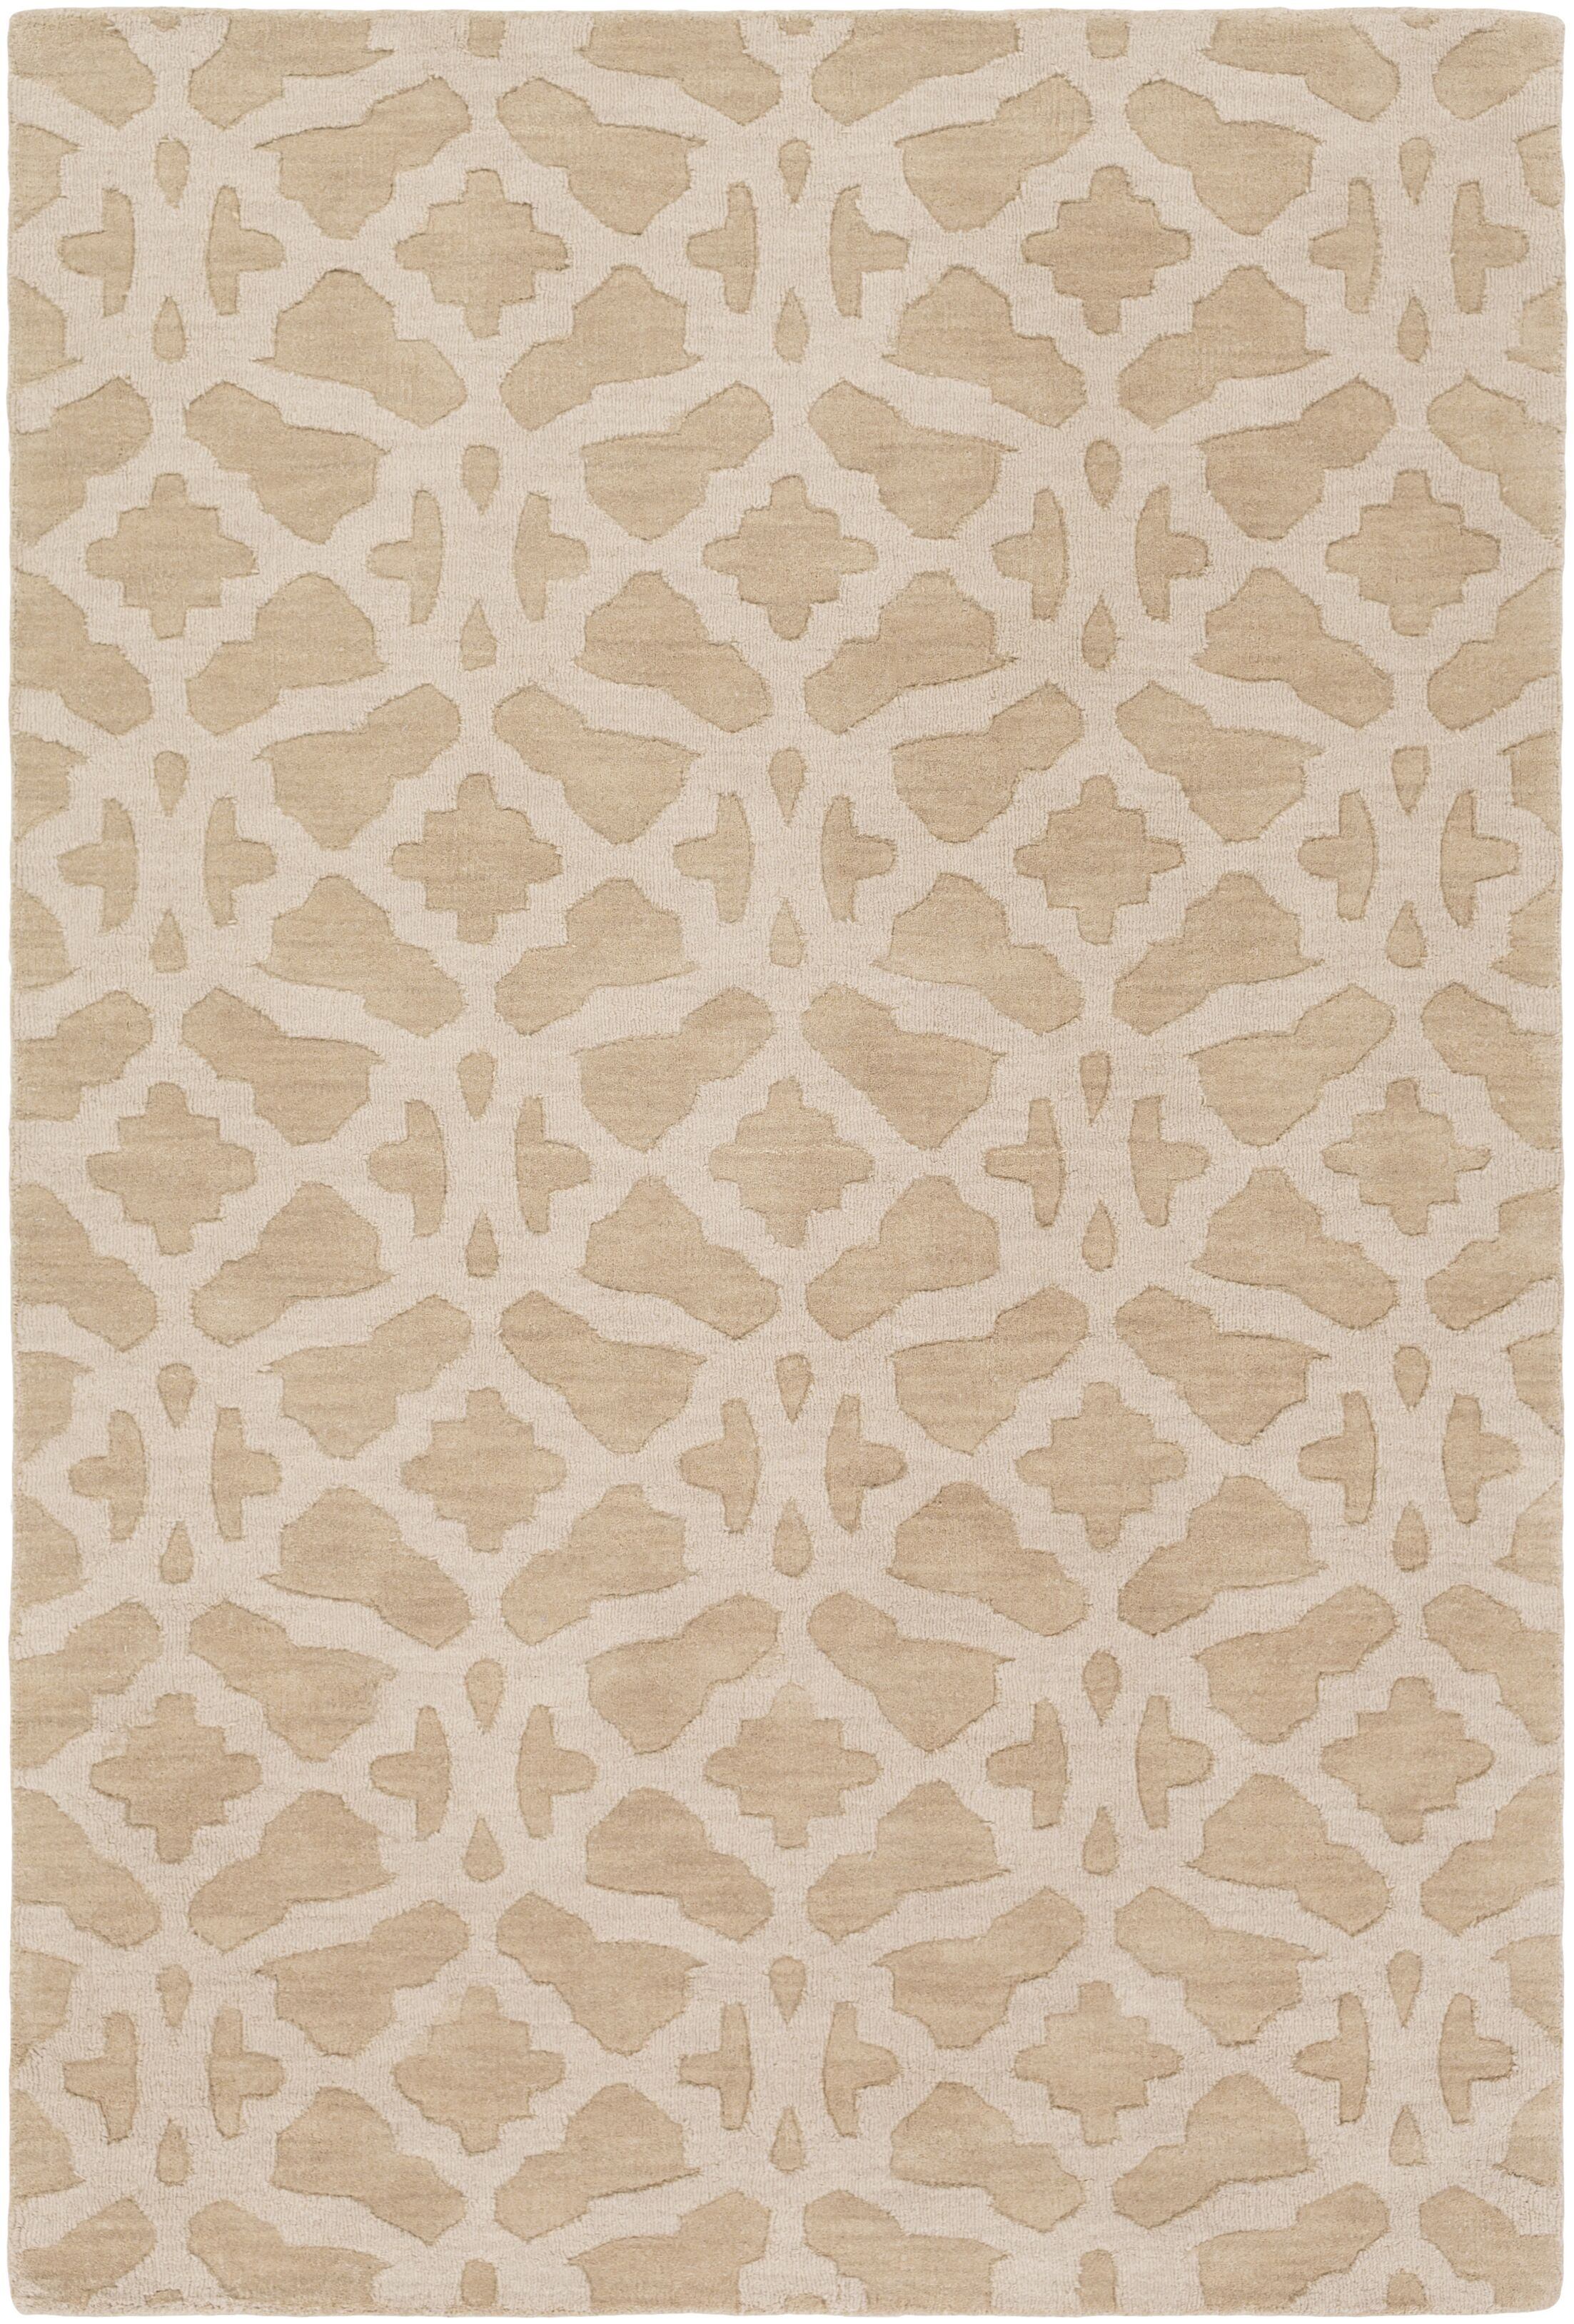 Dylan Hand-Loomed Beige Area Rug Rug Size: Rectangle 8' x 10'